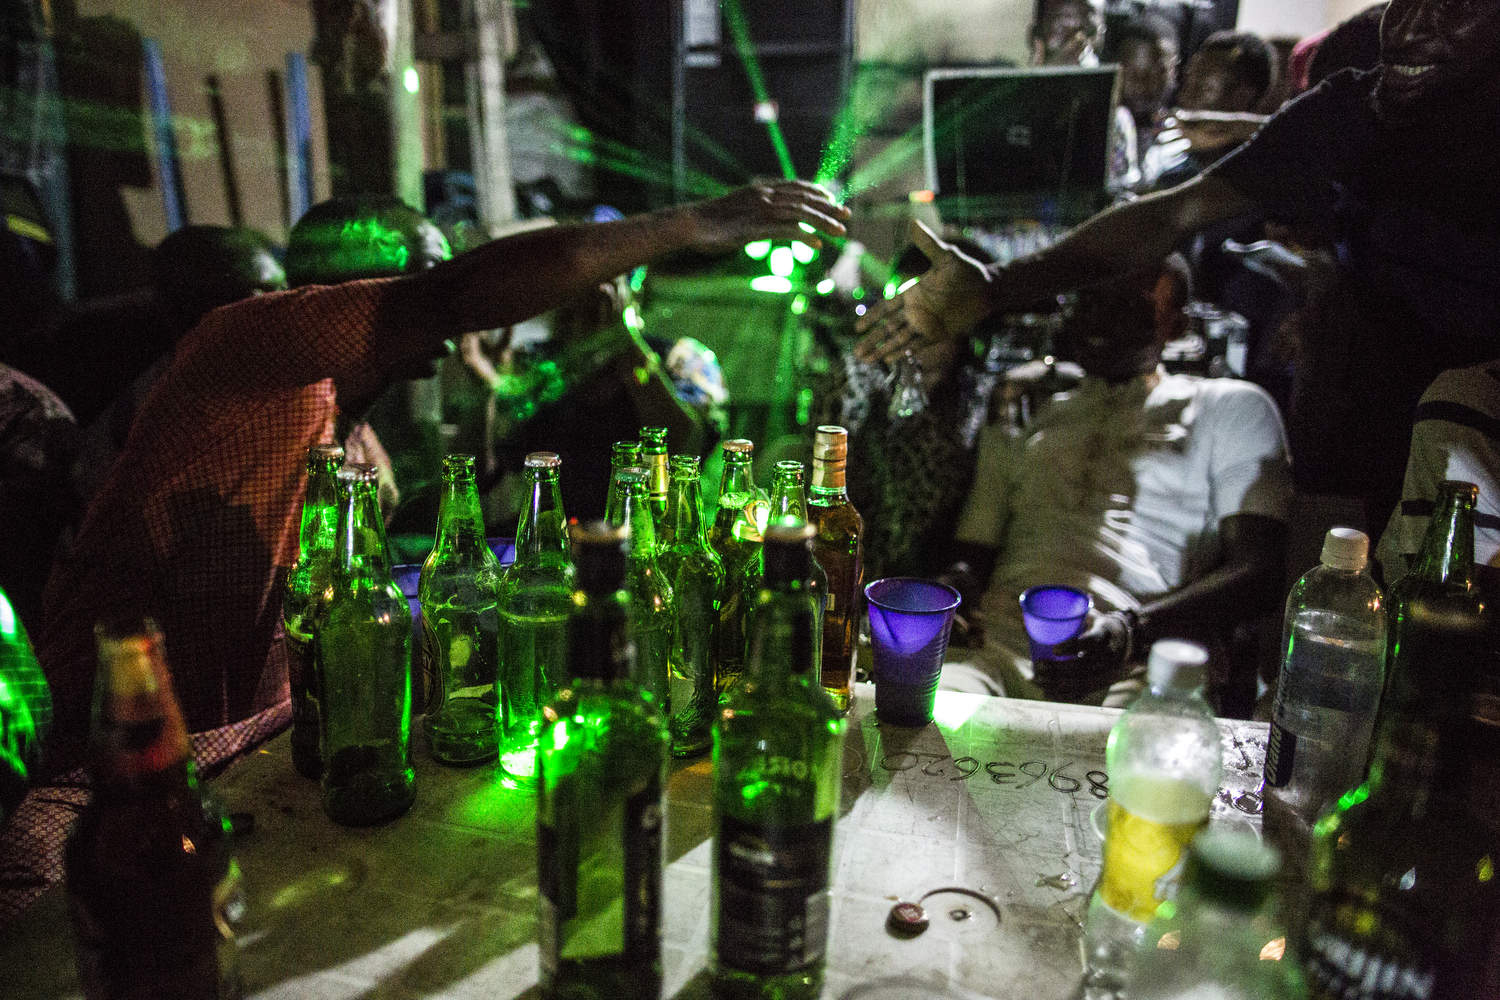 A Lagos Island street party on a Friday night is filled with many neighborhood types drinking Star beer and listening to young musicians practicing their best numbers.